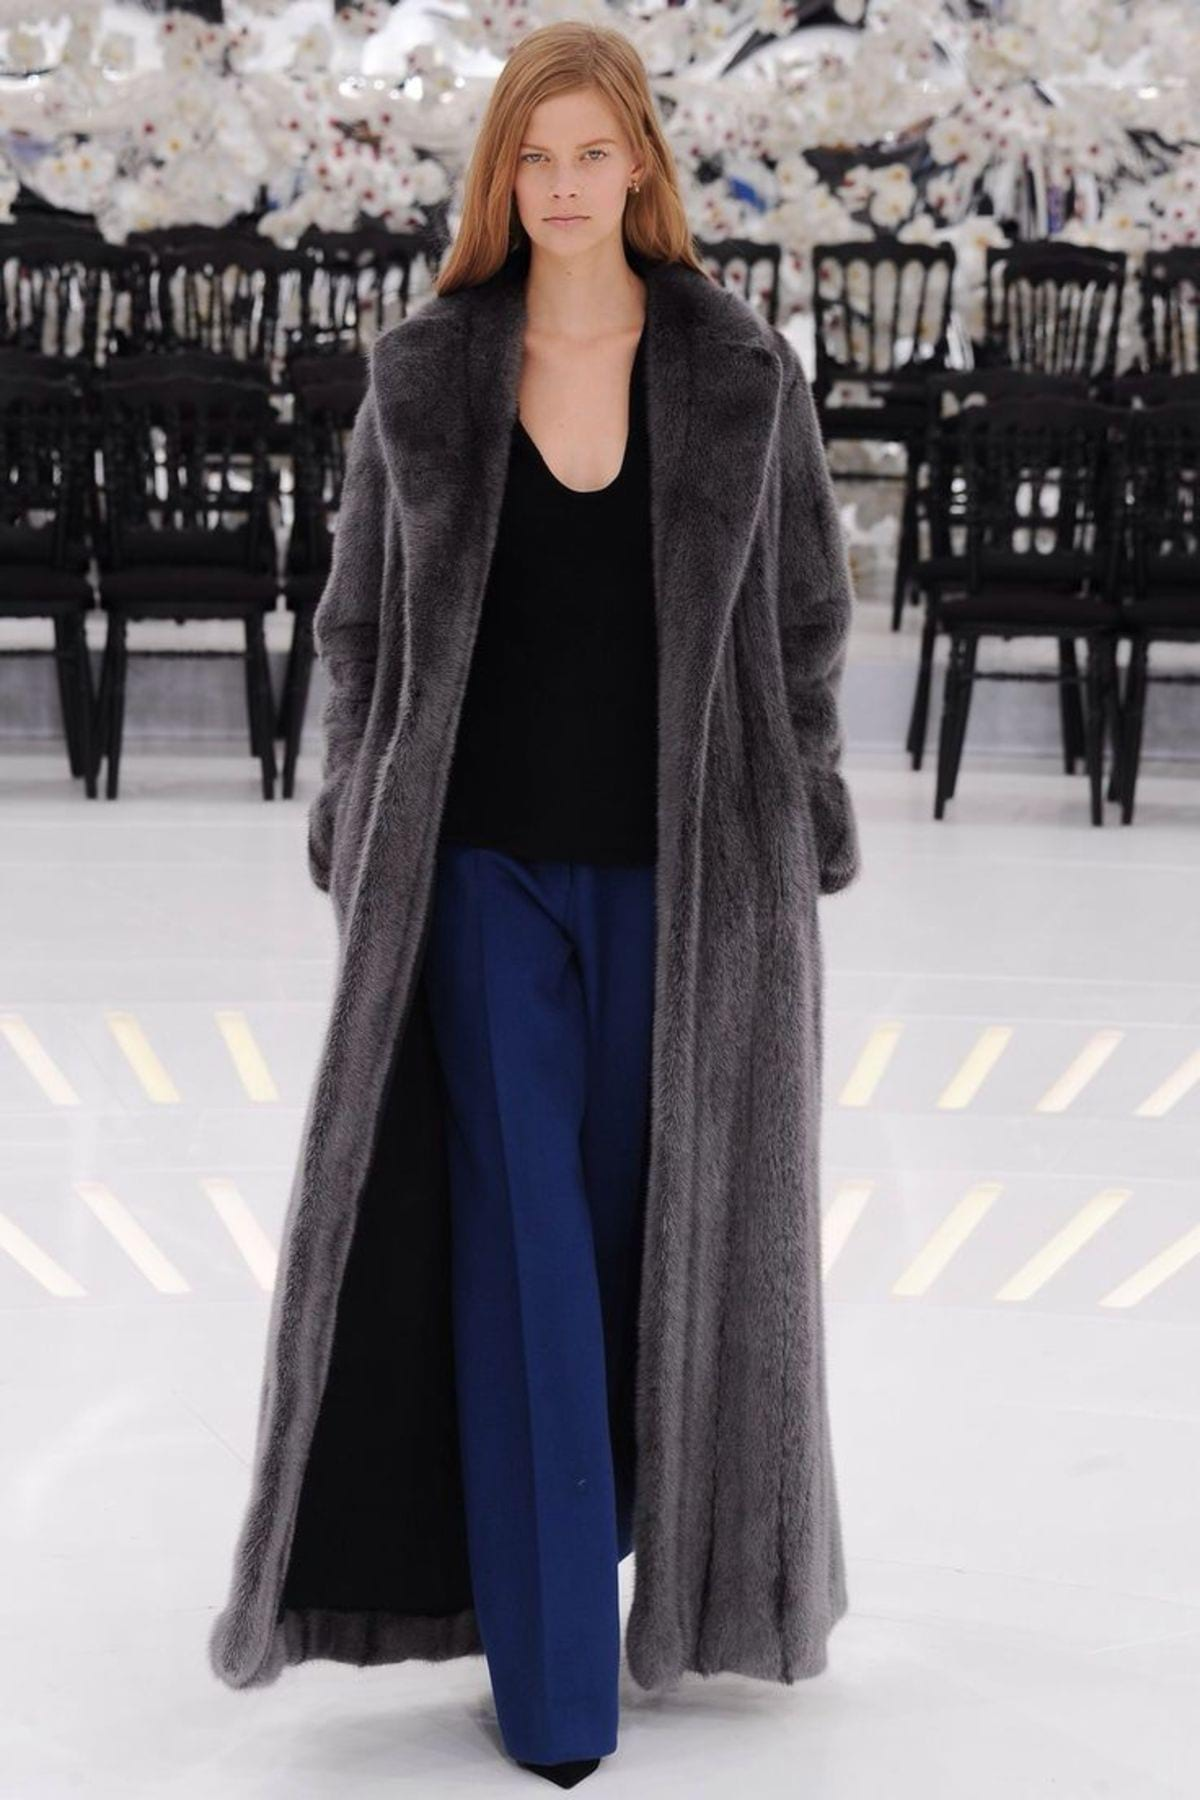 charcoal-fur-coat-black-sleeveless-top-navy-wide-leg-pants-black-ankle-boots-original-5502